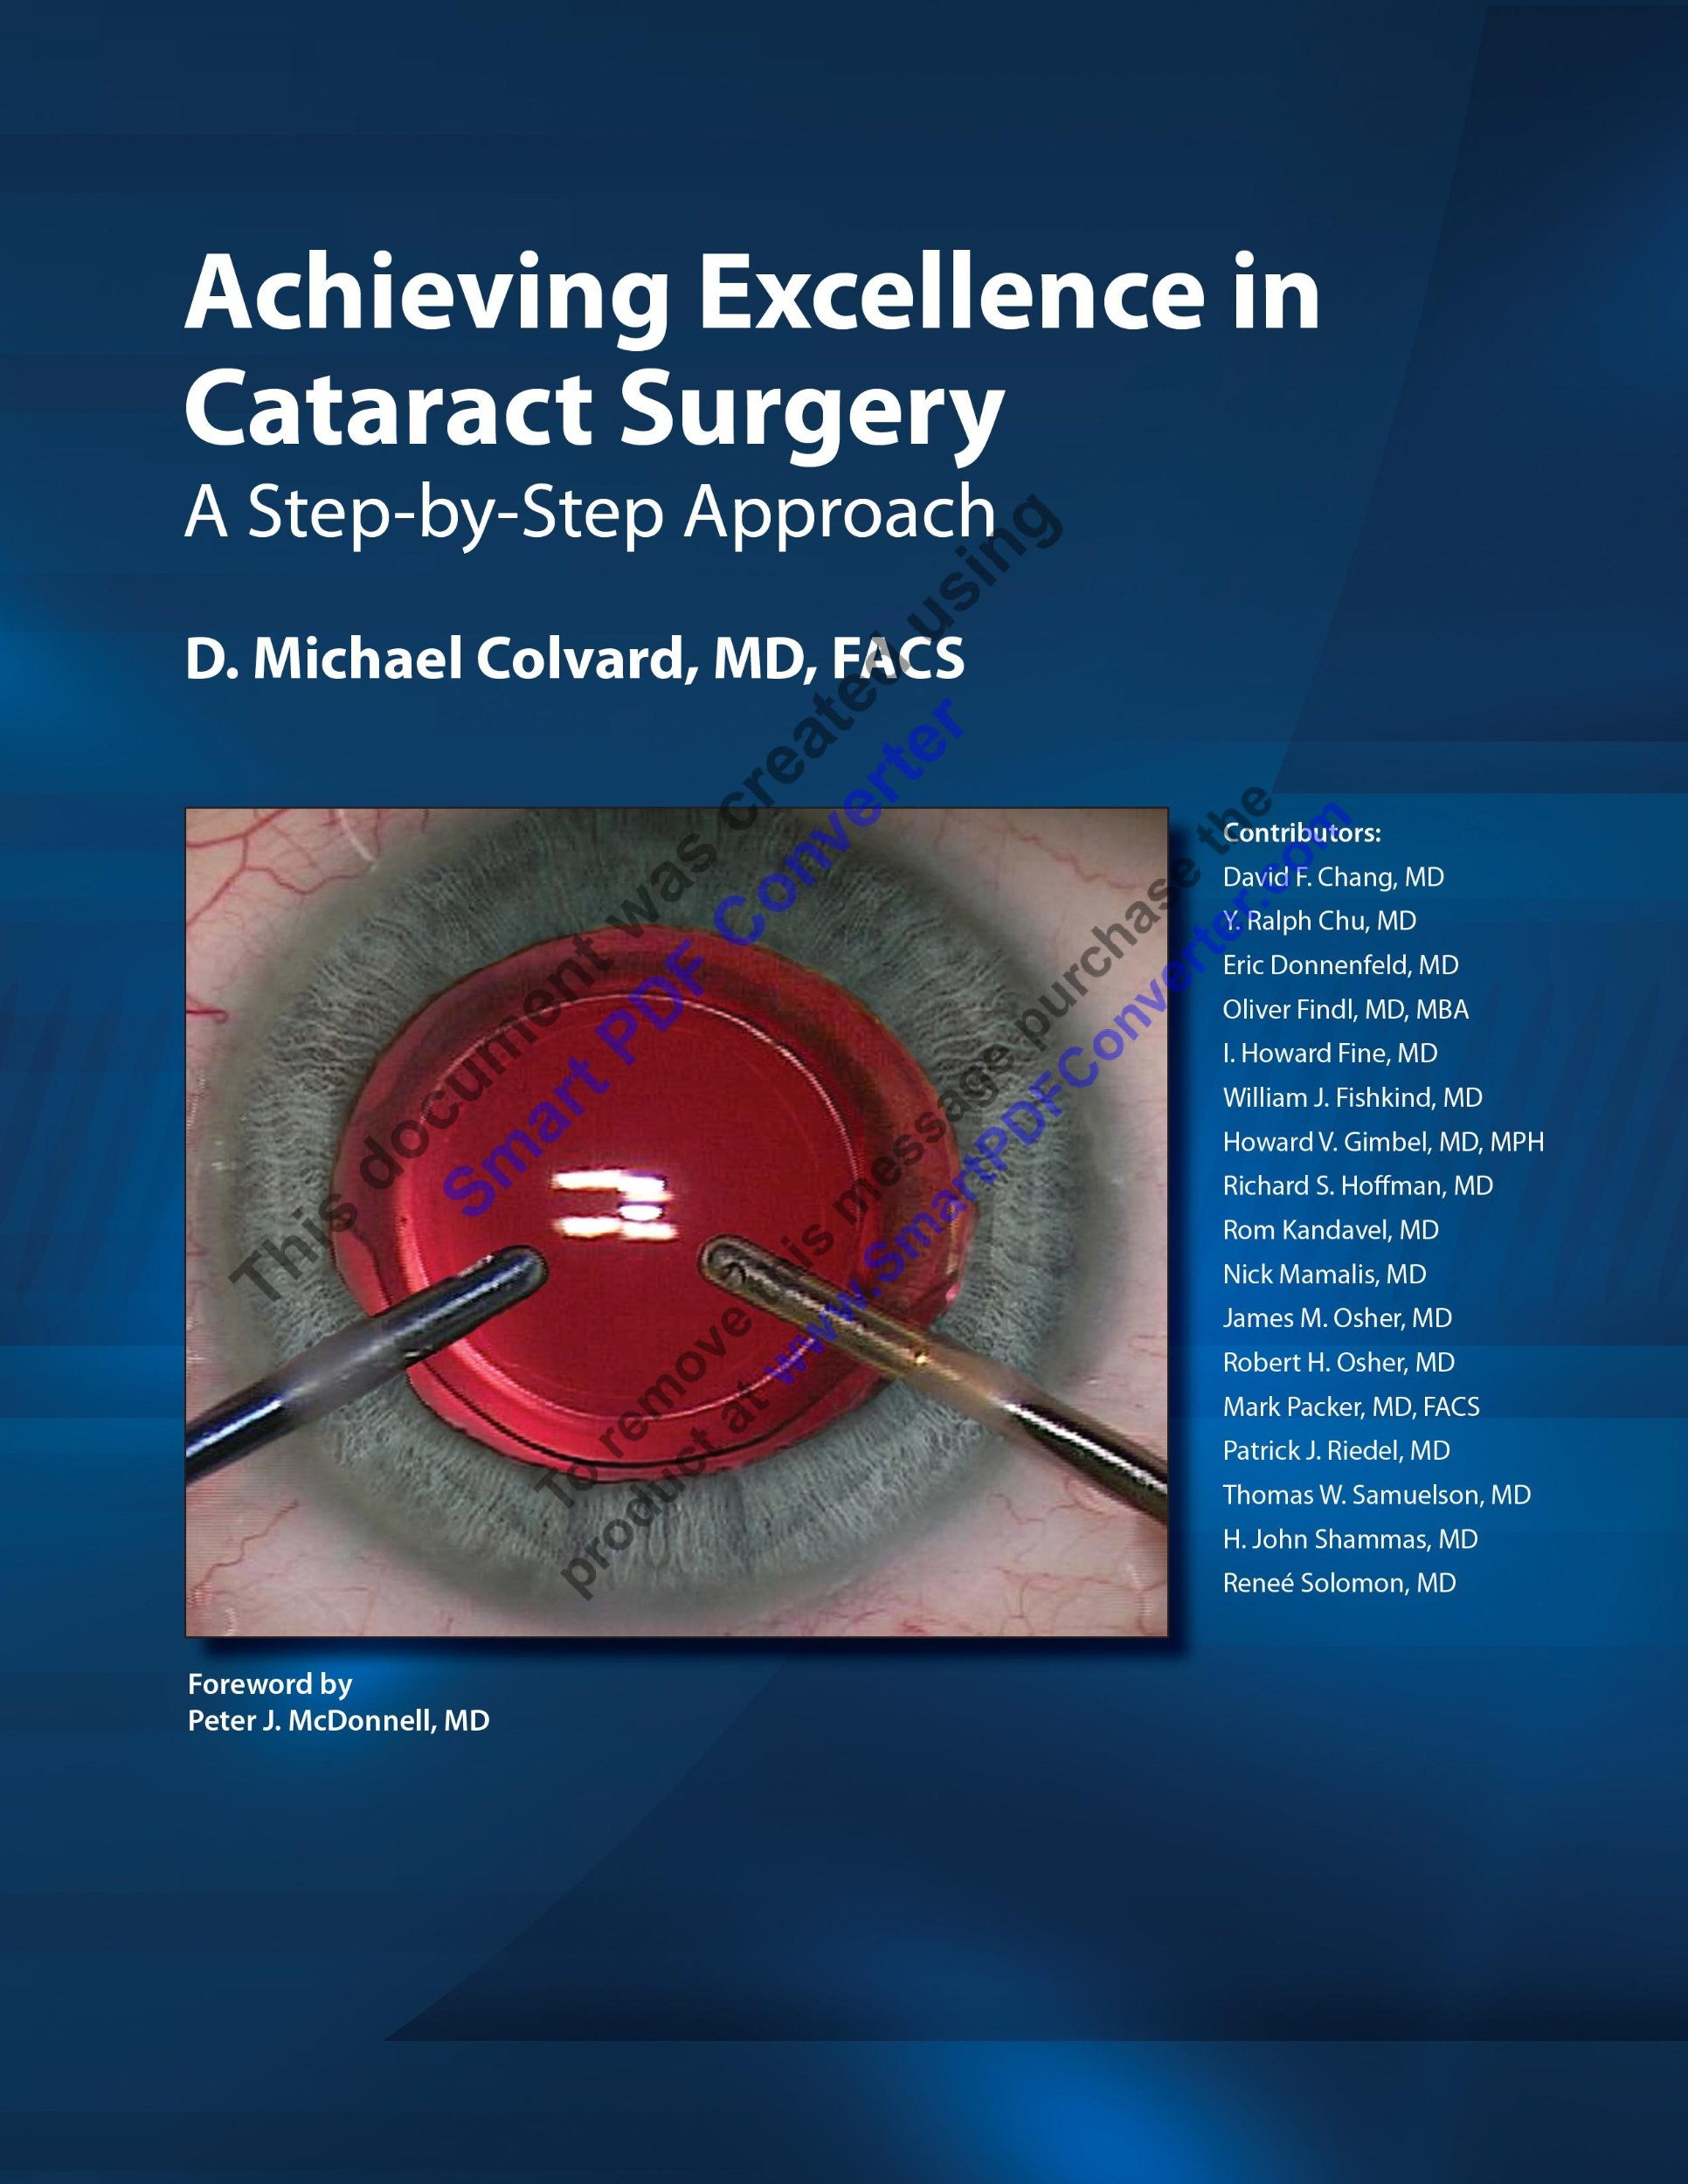 Achieving Excellence in Cataract Surgery A Step-by-Step Approach pdf